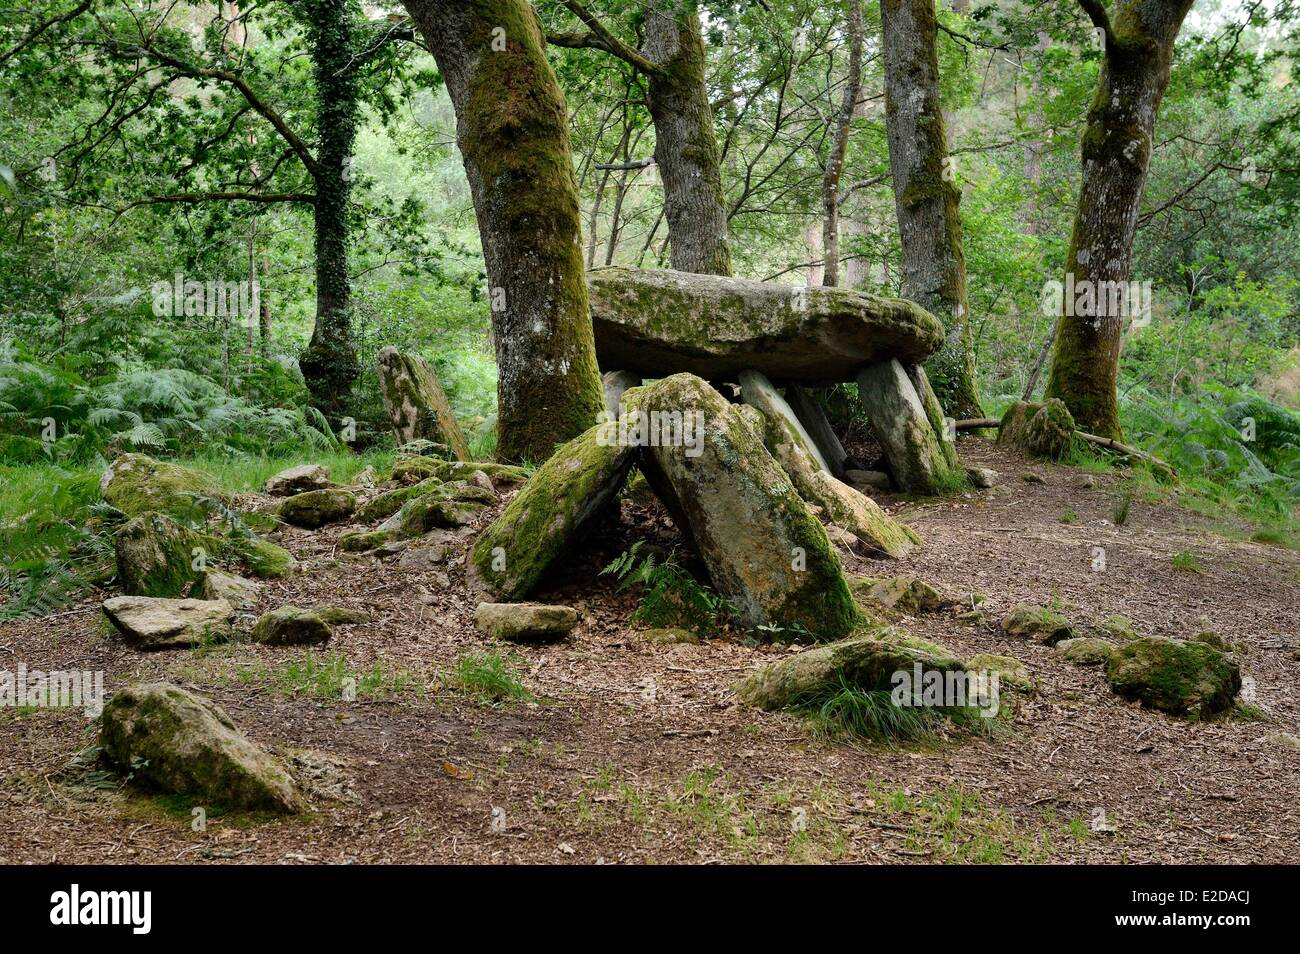 France, Morbihan, Loge au loup dolmen, probably more then 4500 years old - Stock Image